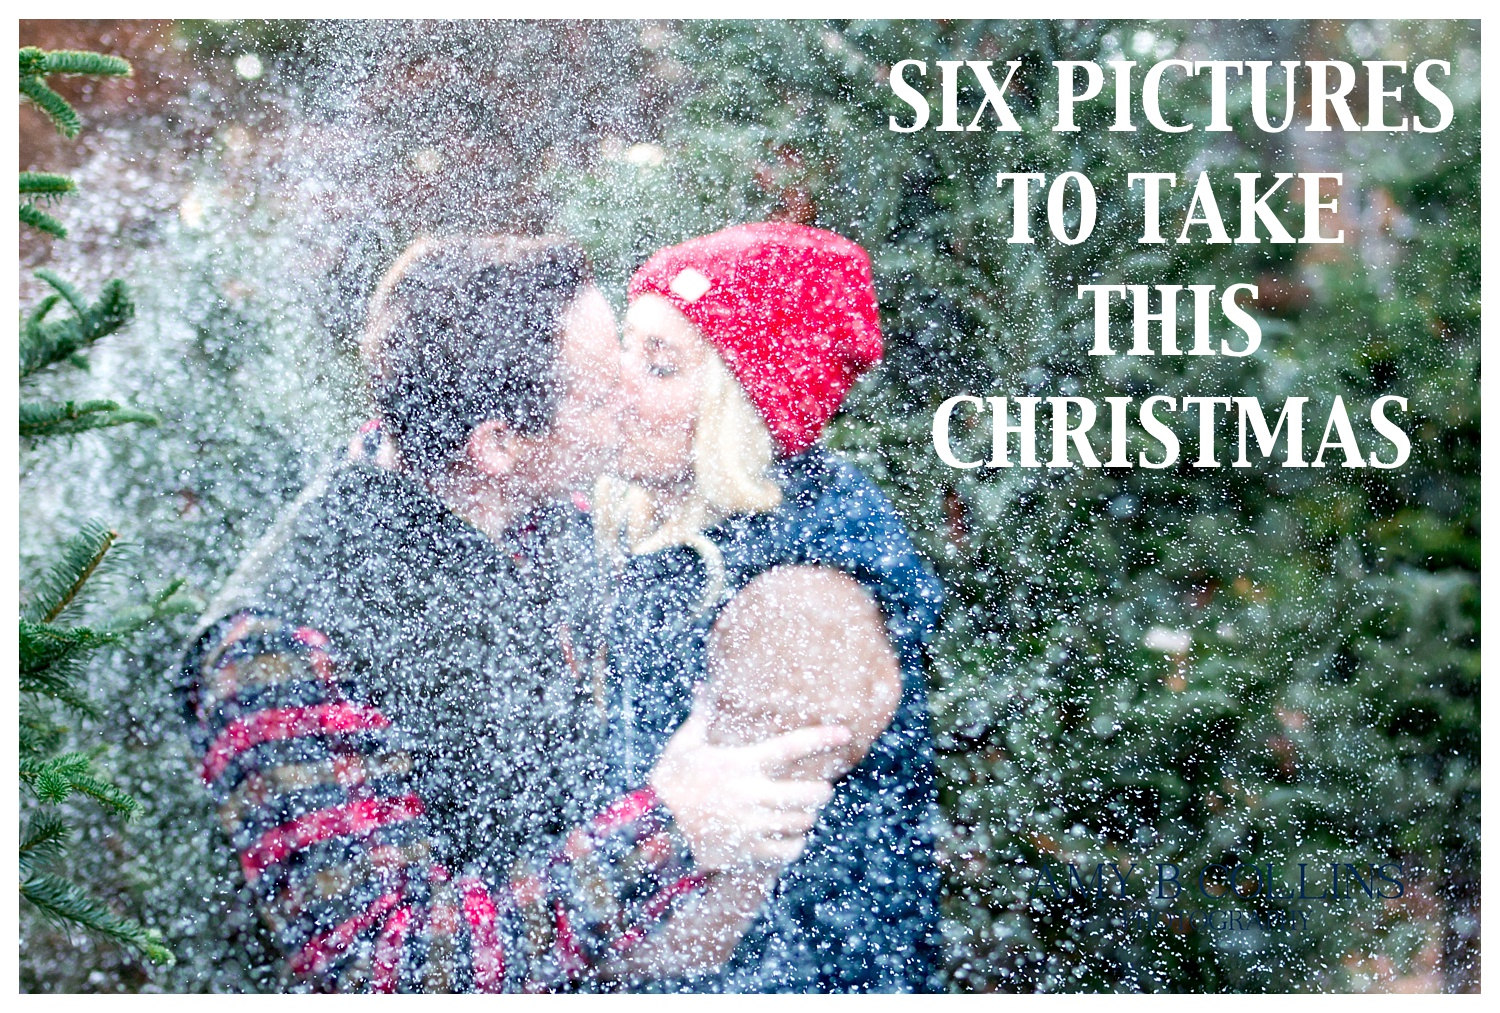 Six Pictures to take this Christmas